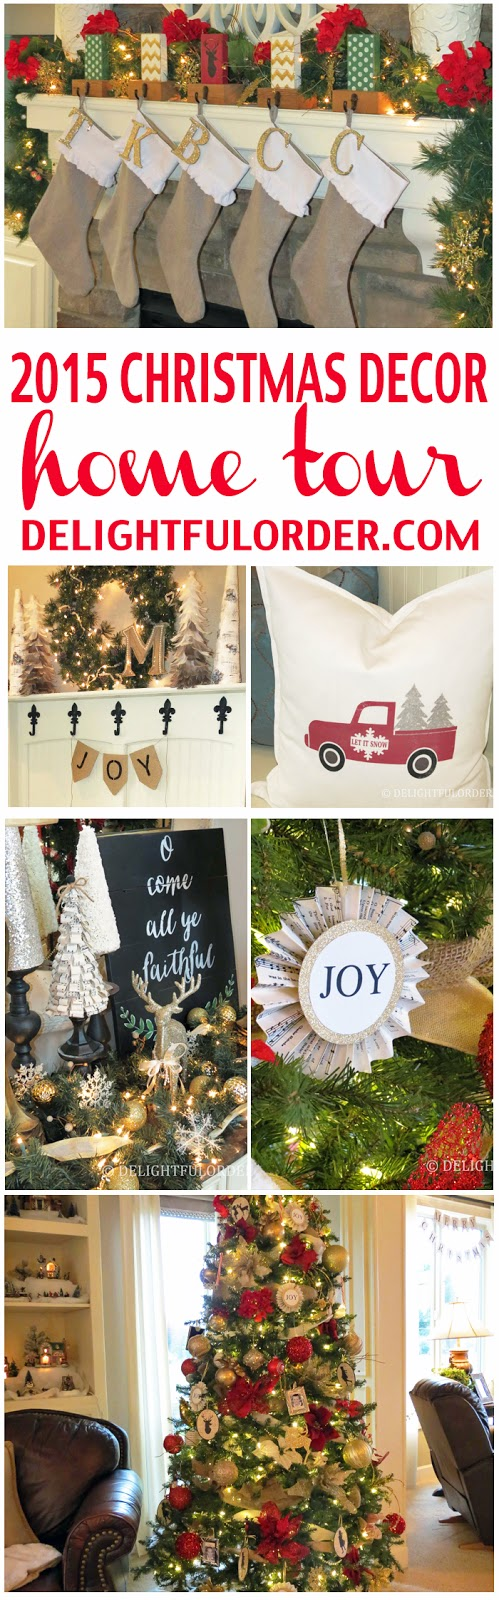 2015 Christmas Decor Home Tour